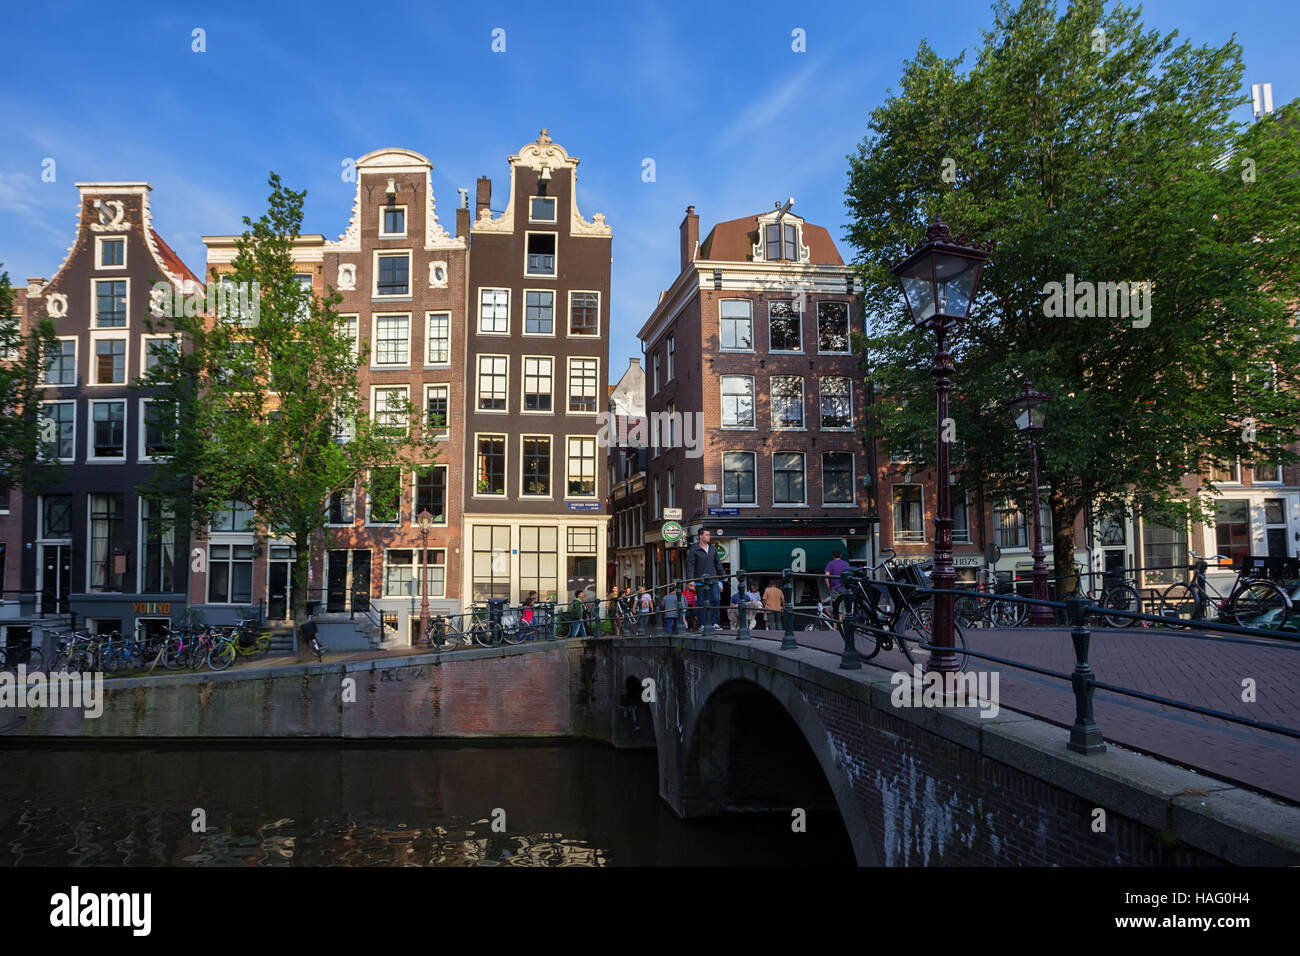 AMSTERDAM - CIRCA JUNE 2014 - Stock Image